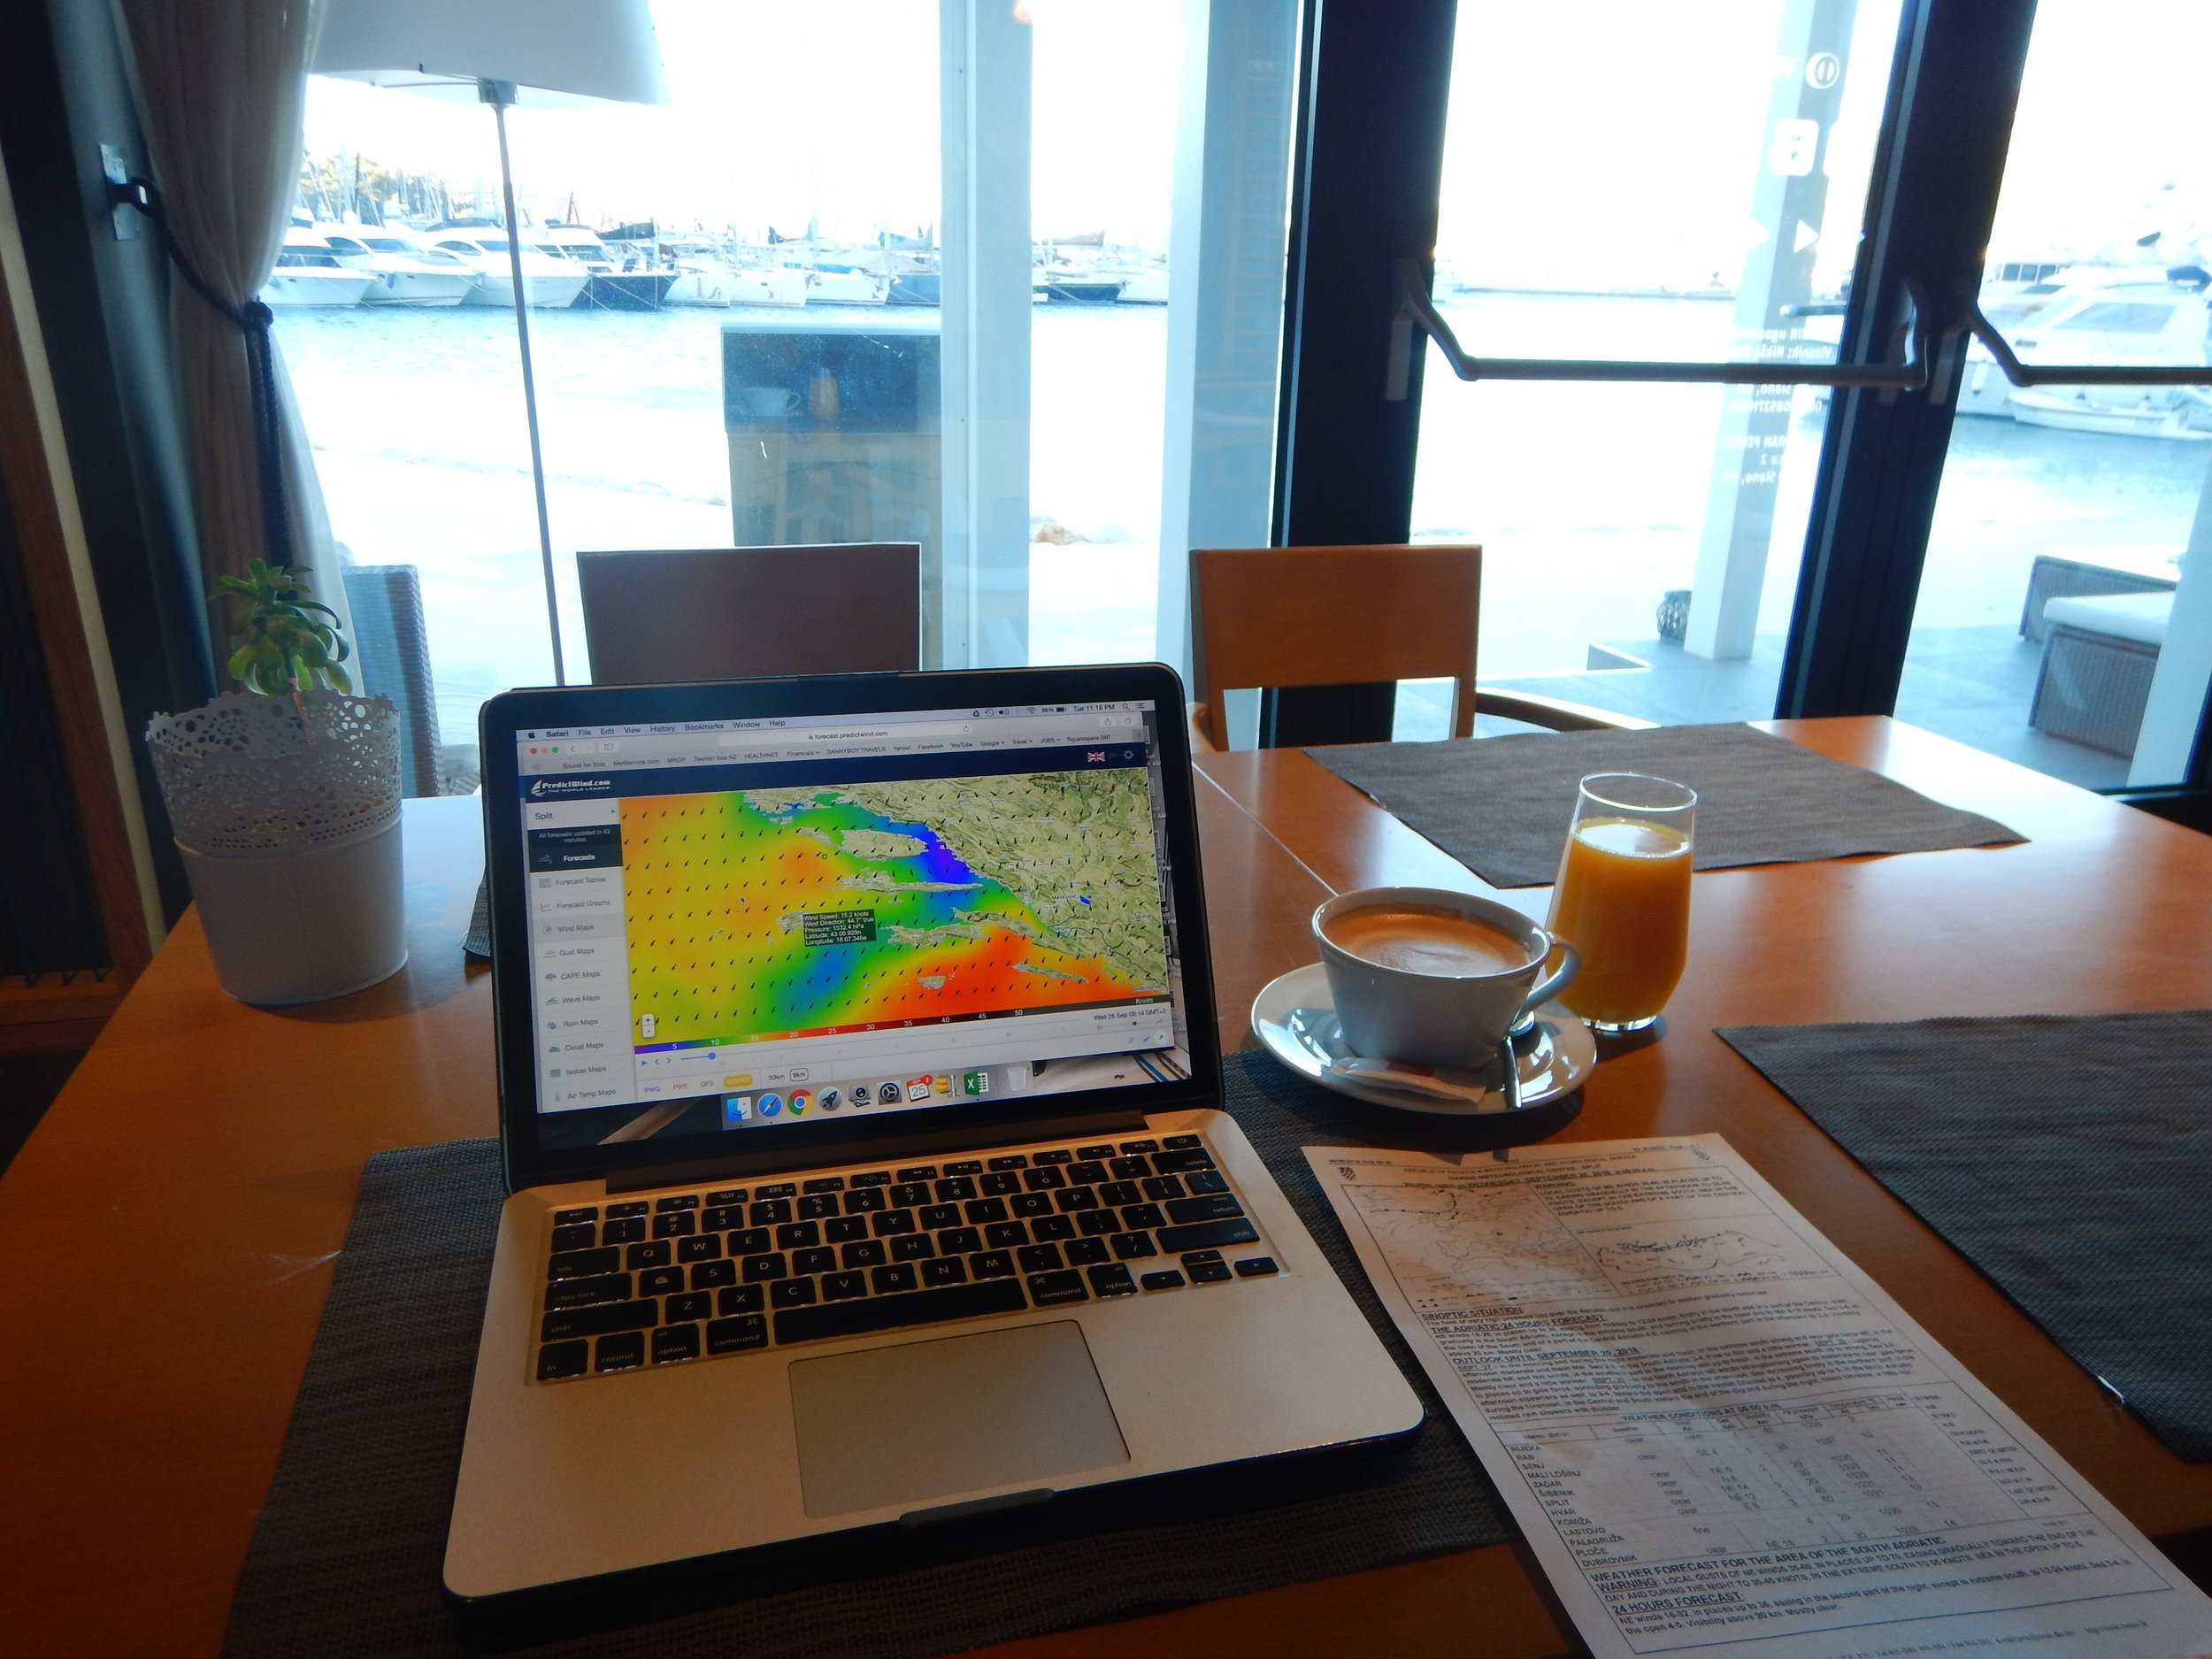 Checking the latest wind forecast on Predictwind.com